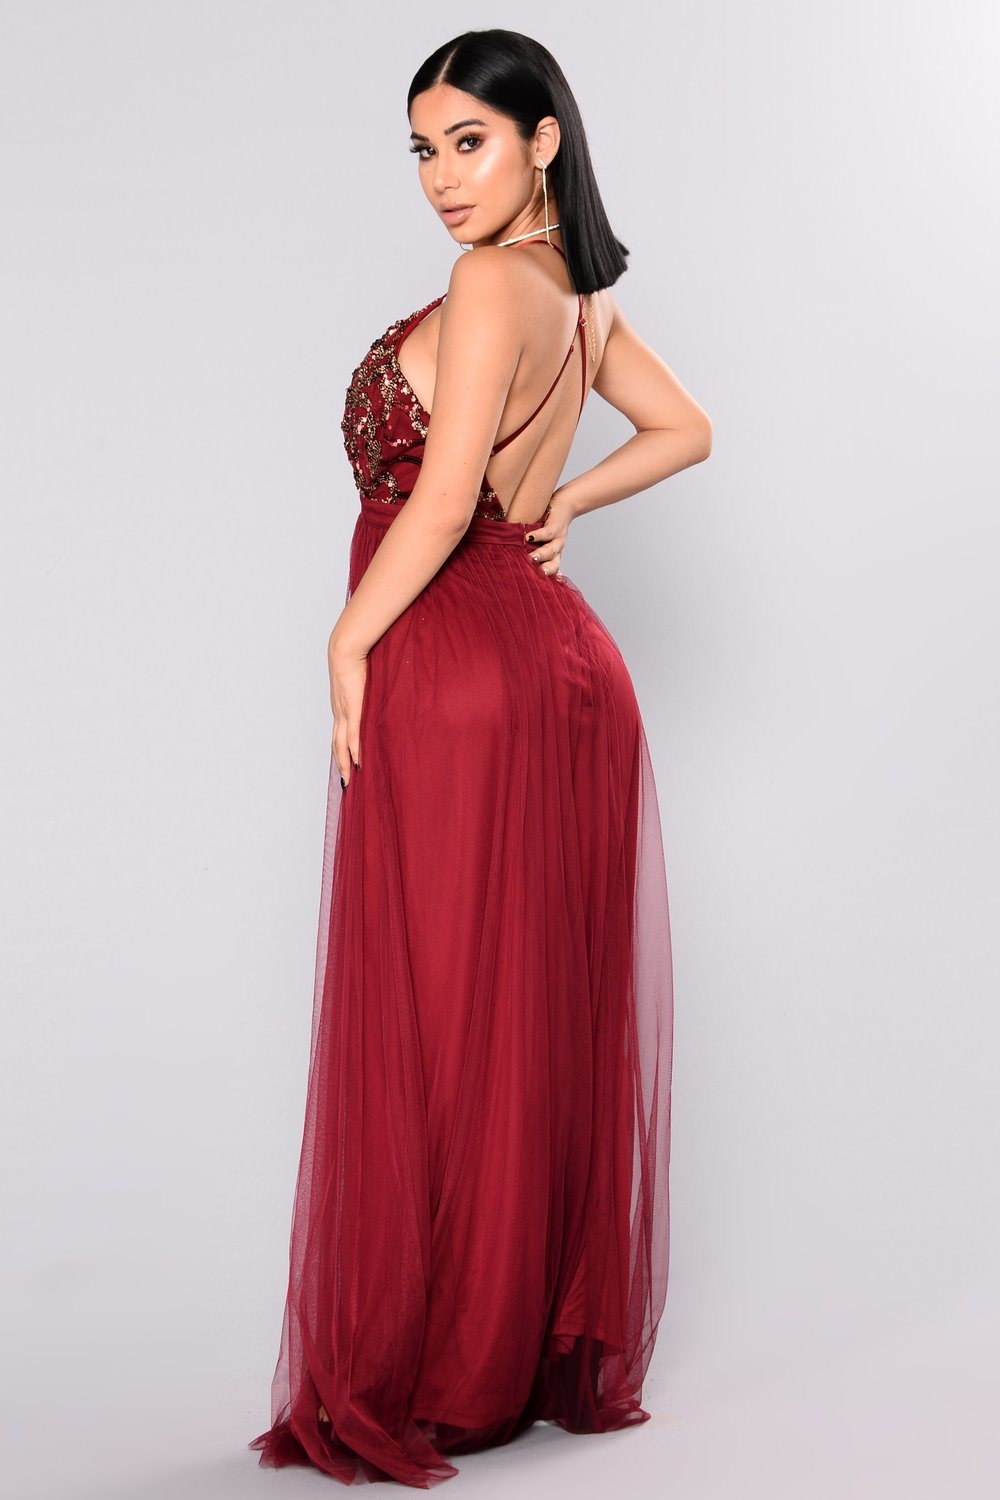 e2dccf030e Maxi Dress Burgundy Deep V Evening Dress Criss Cross Back Fashion Women  Dress Closure 2 Front Slits Tulle Skirt